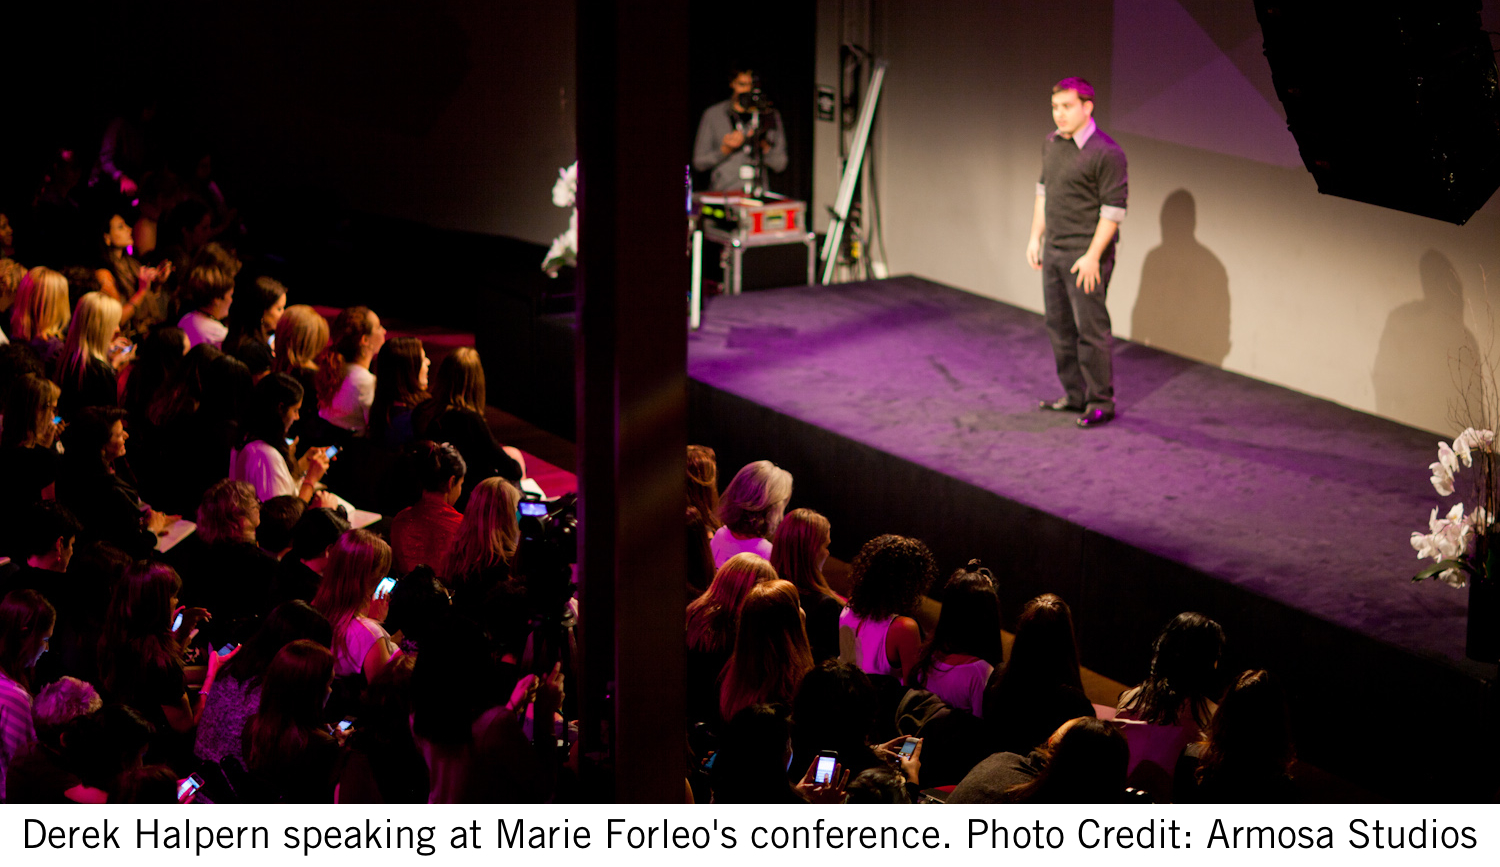 Derek Halpern speaking at Marie Forleo's conference. Photo credit: Armosa Studios.